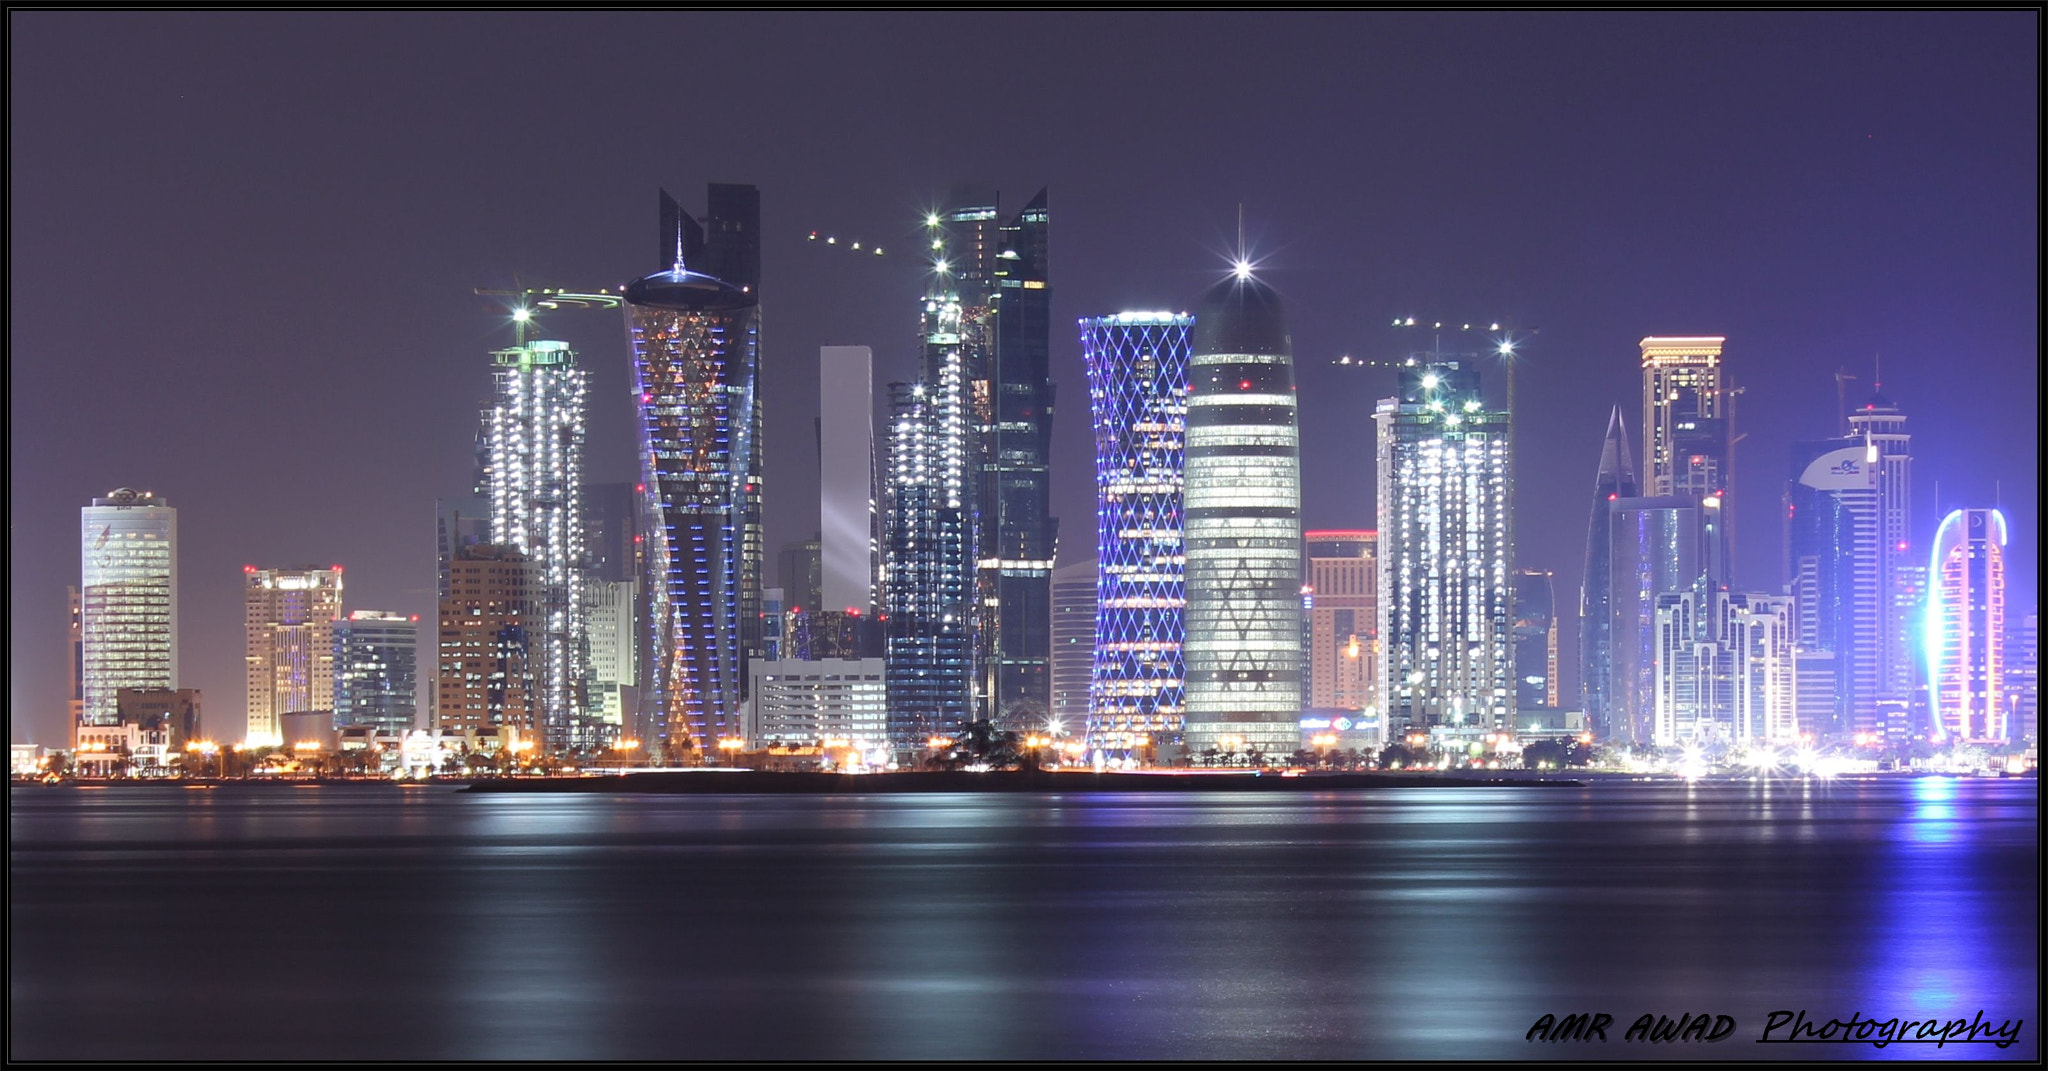 Photograph DOHA COURNICH by Amr Awad on 500px